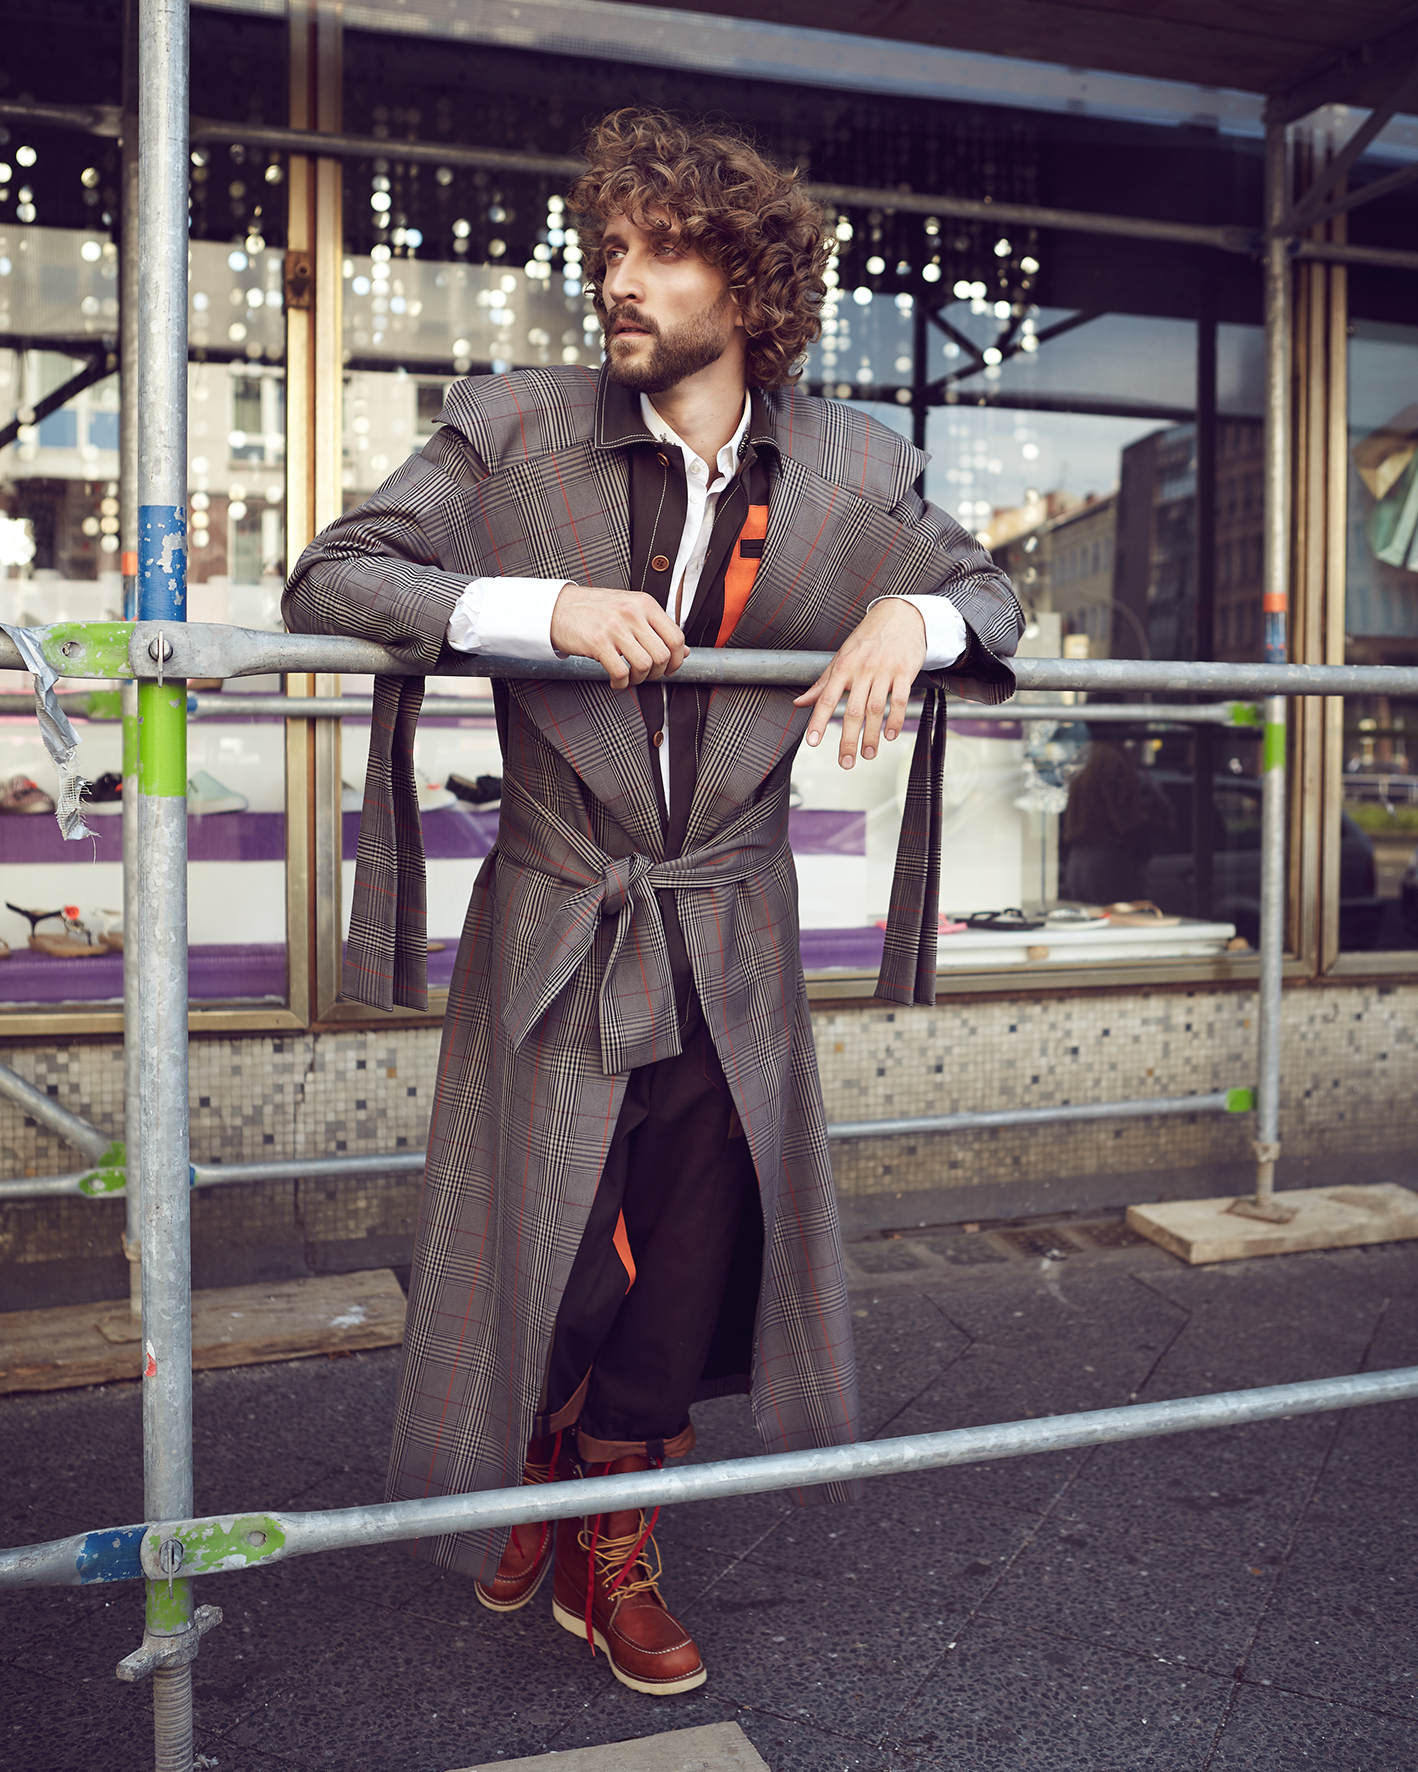 Male fashion editorial with model Erik Reisinger by Heidi Rondak for Vangardist